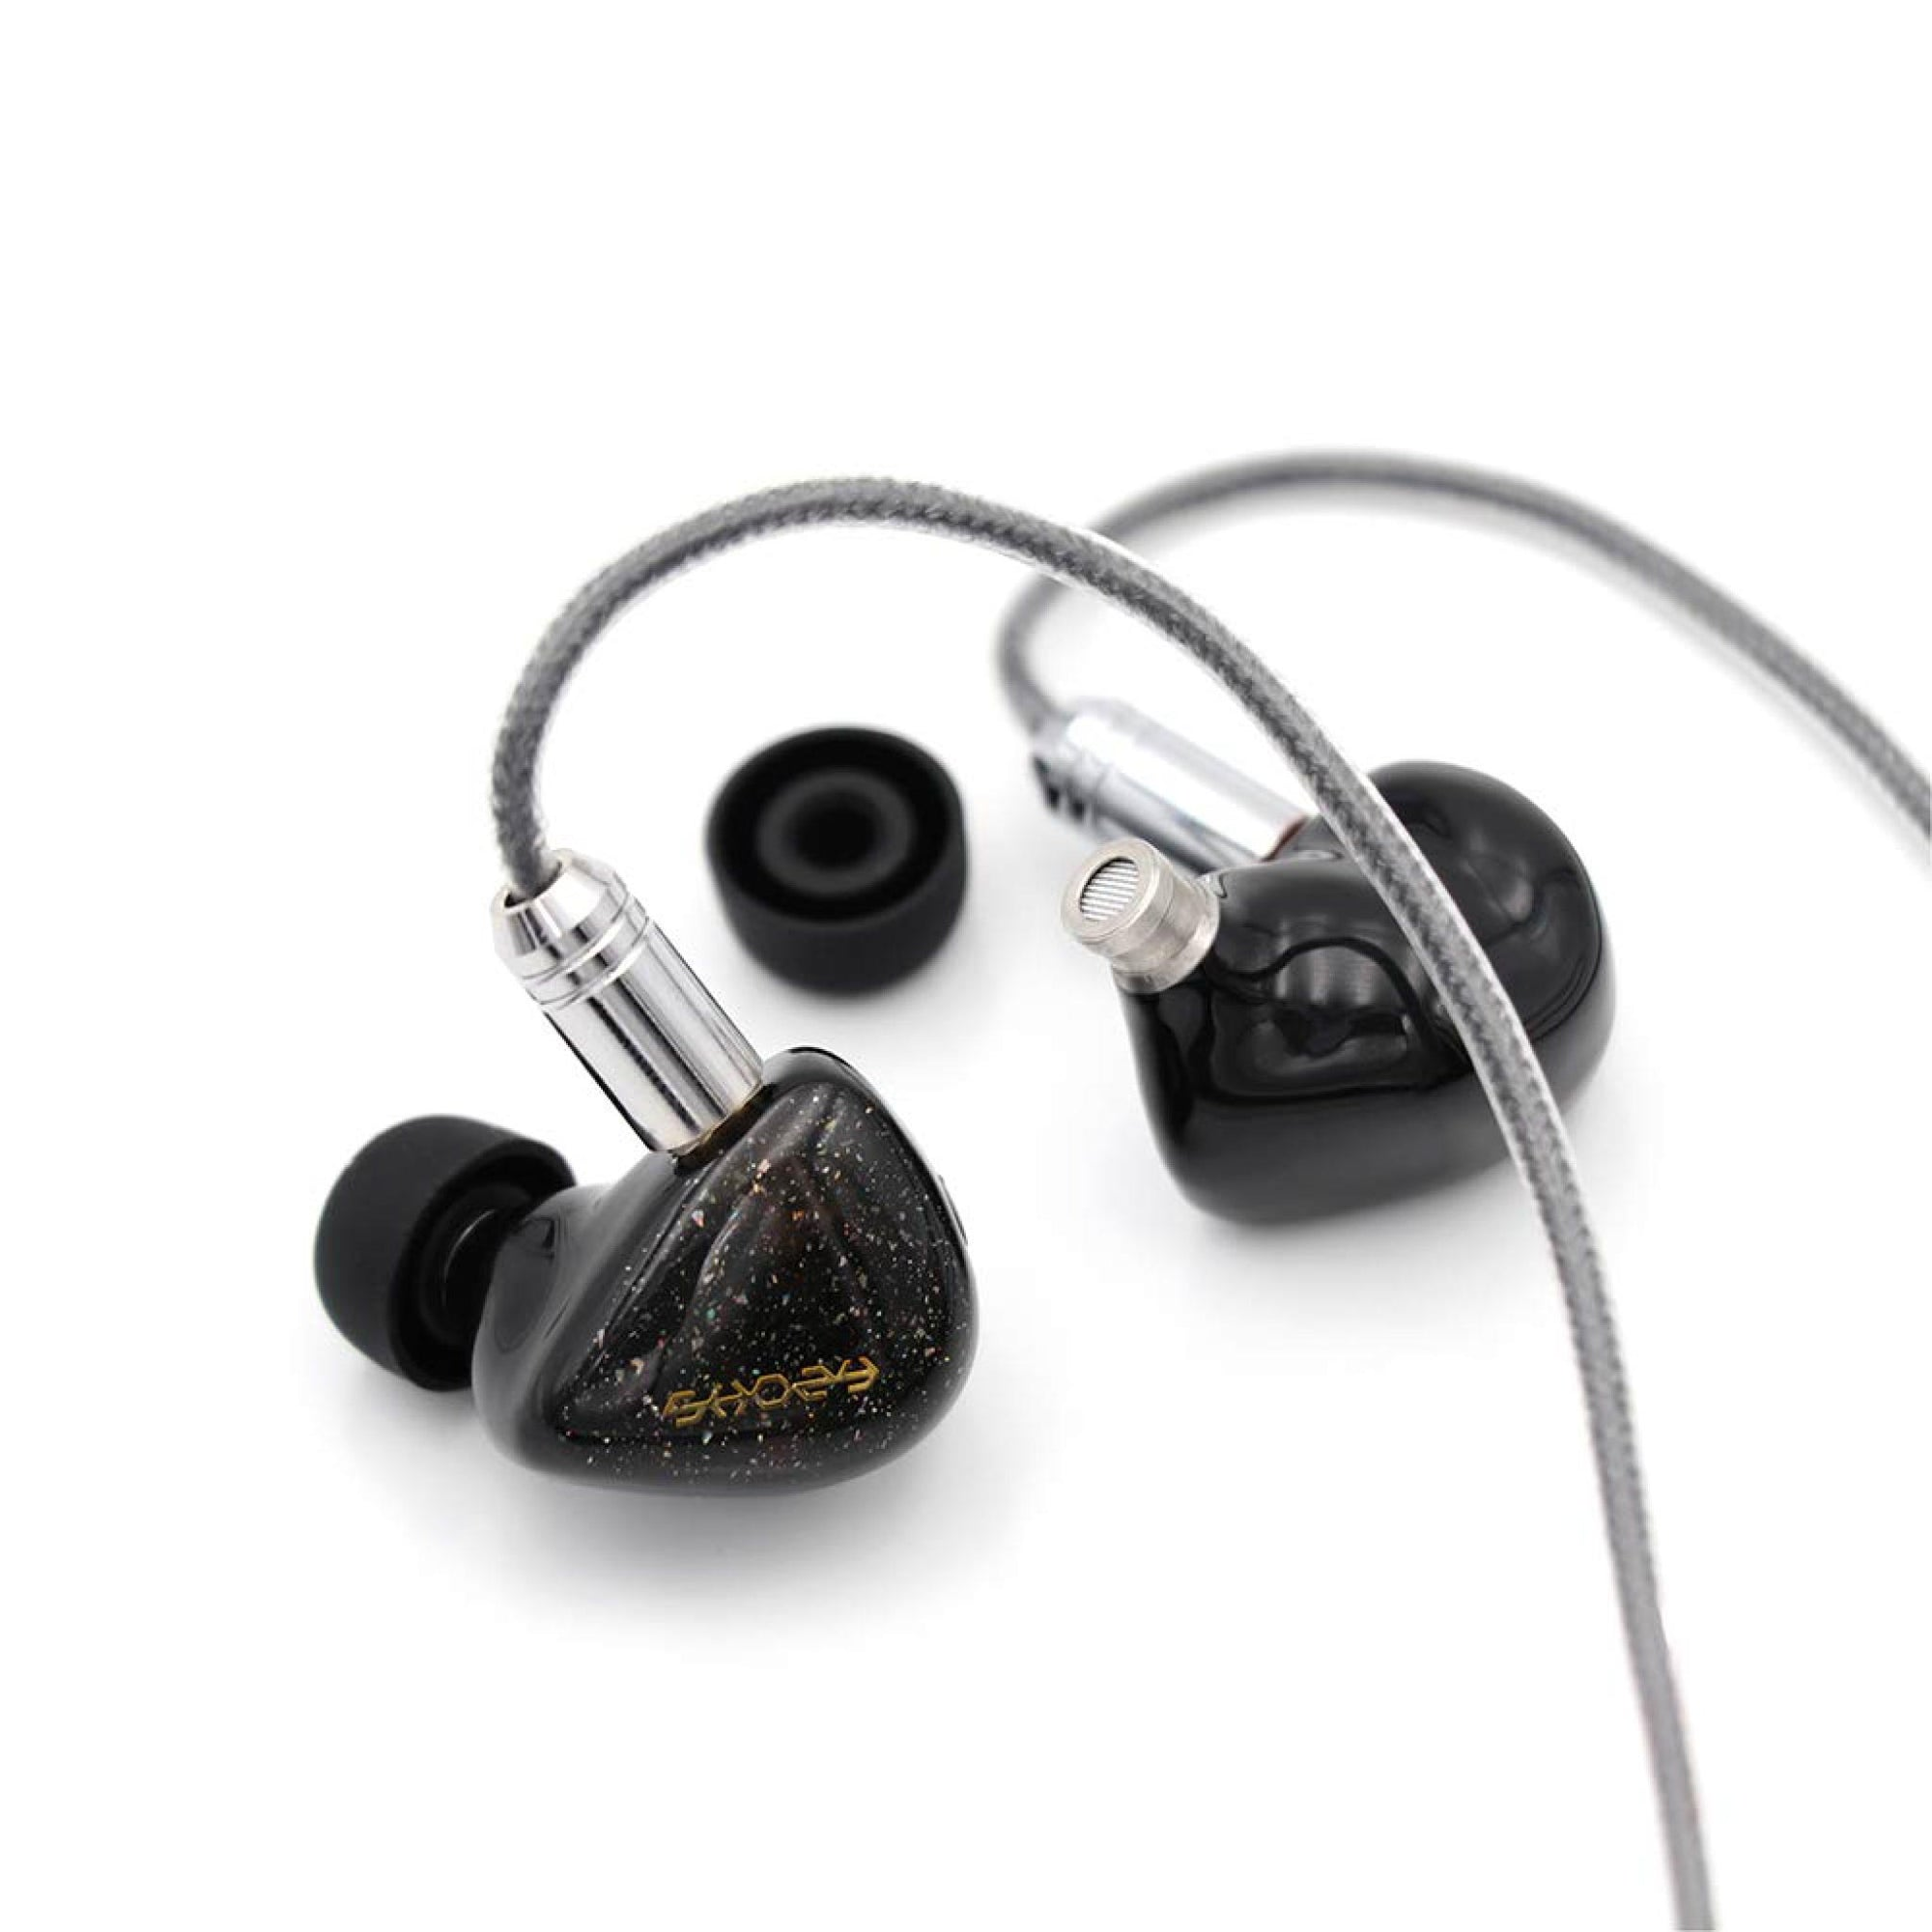 Shozy Form 1.1 Dual Driver Hybrid in-Ear Earphones (PRE-BOOK) - Gears For Ears